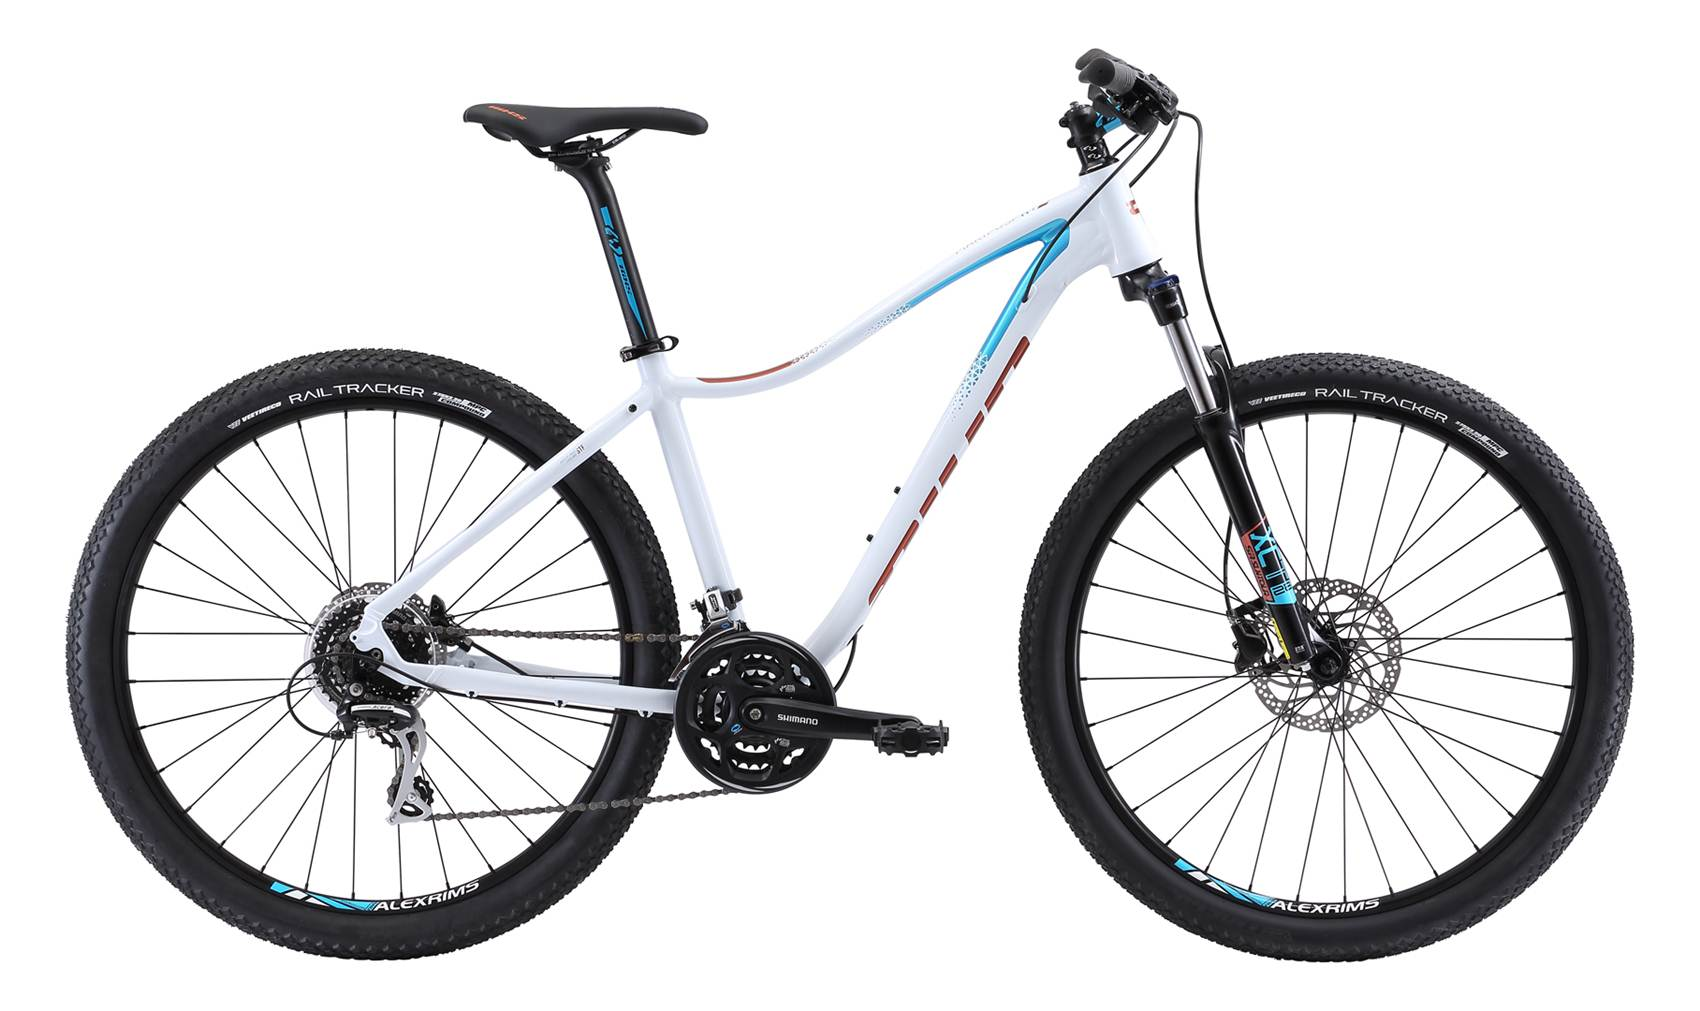 rental-bike-bixs-hartail-mariposa-daetwyler-sports-villars